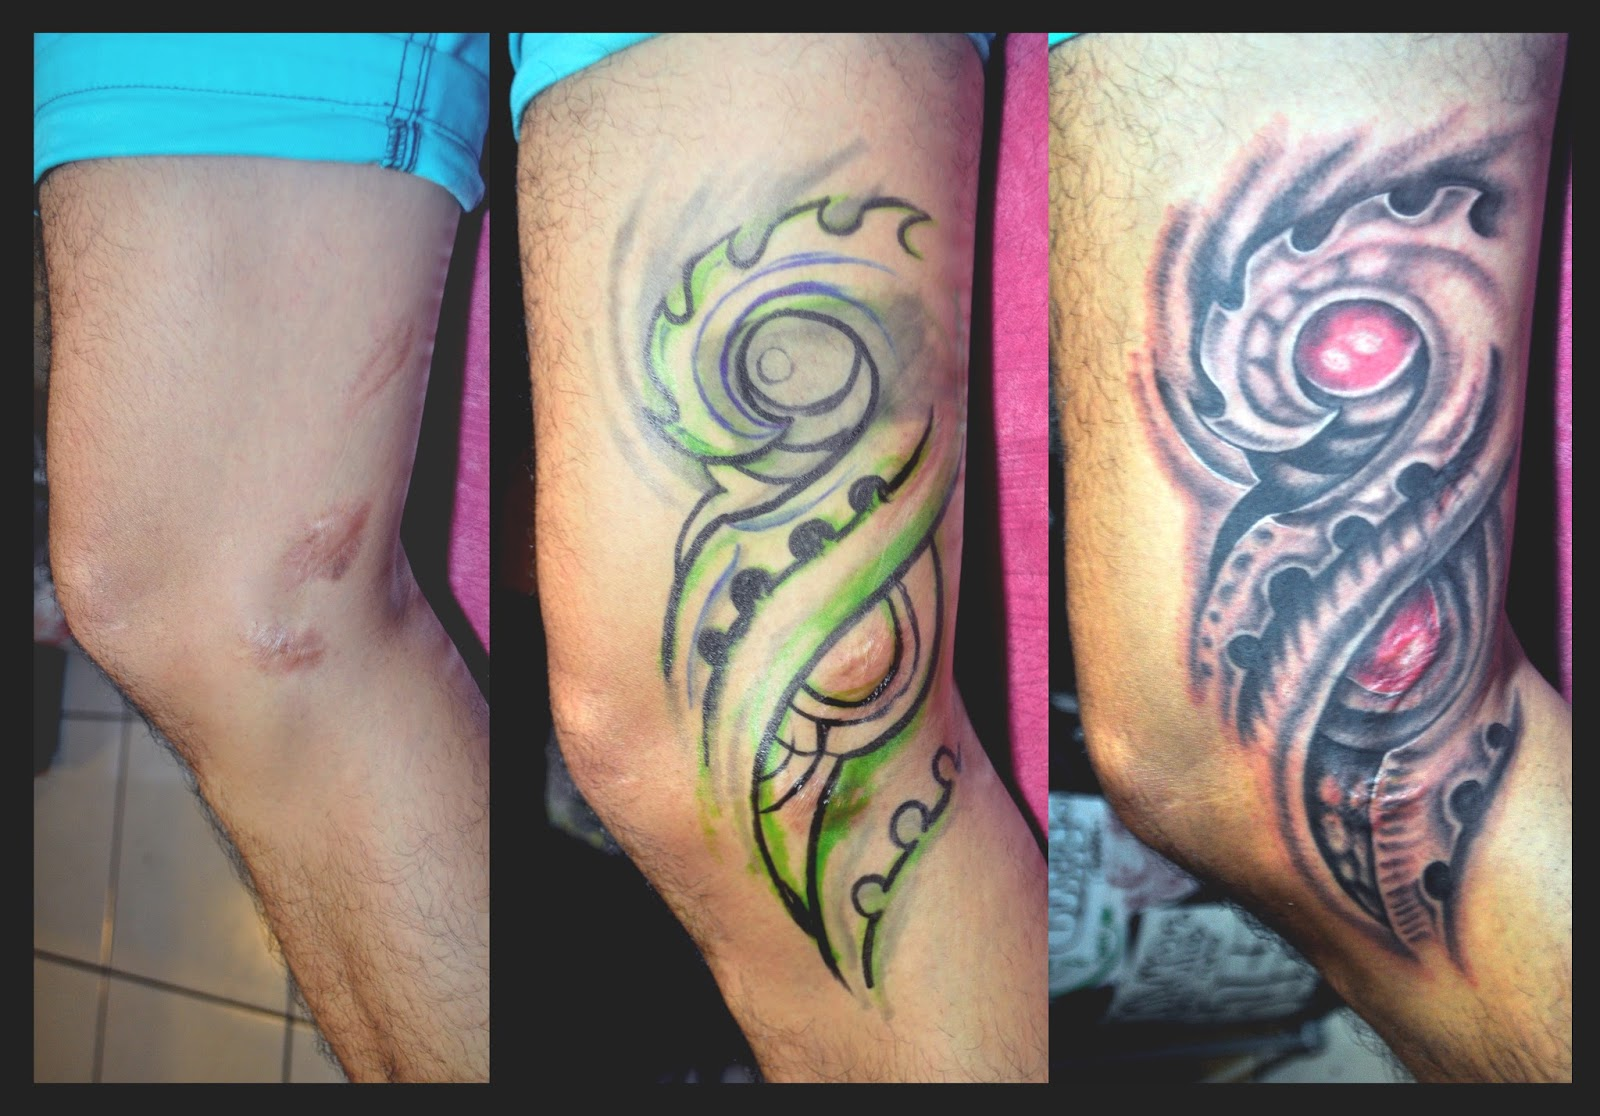 Nikko Samson Tattoo: COVER UPS (Stretch Marks, Old Scars, and Bad ...